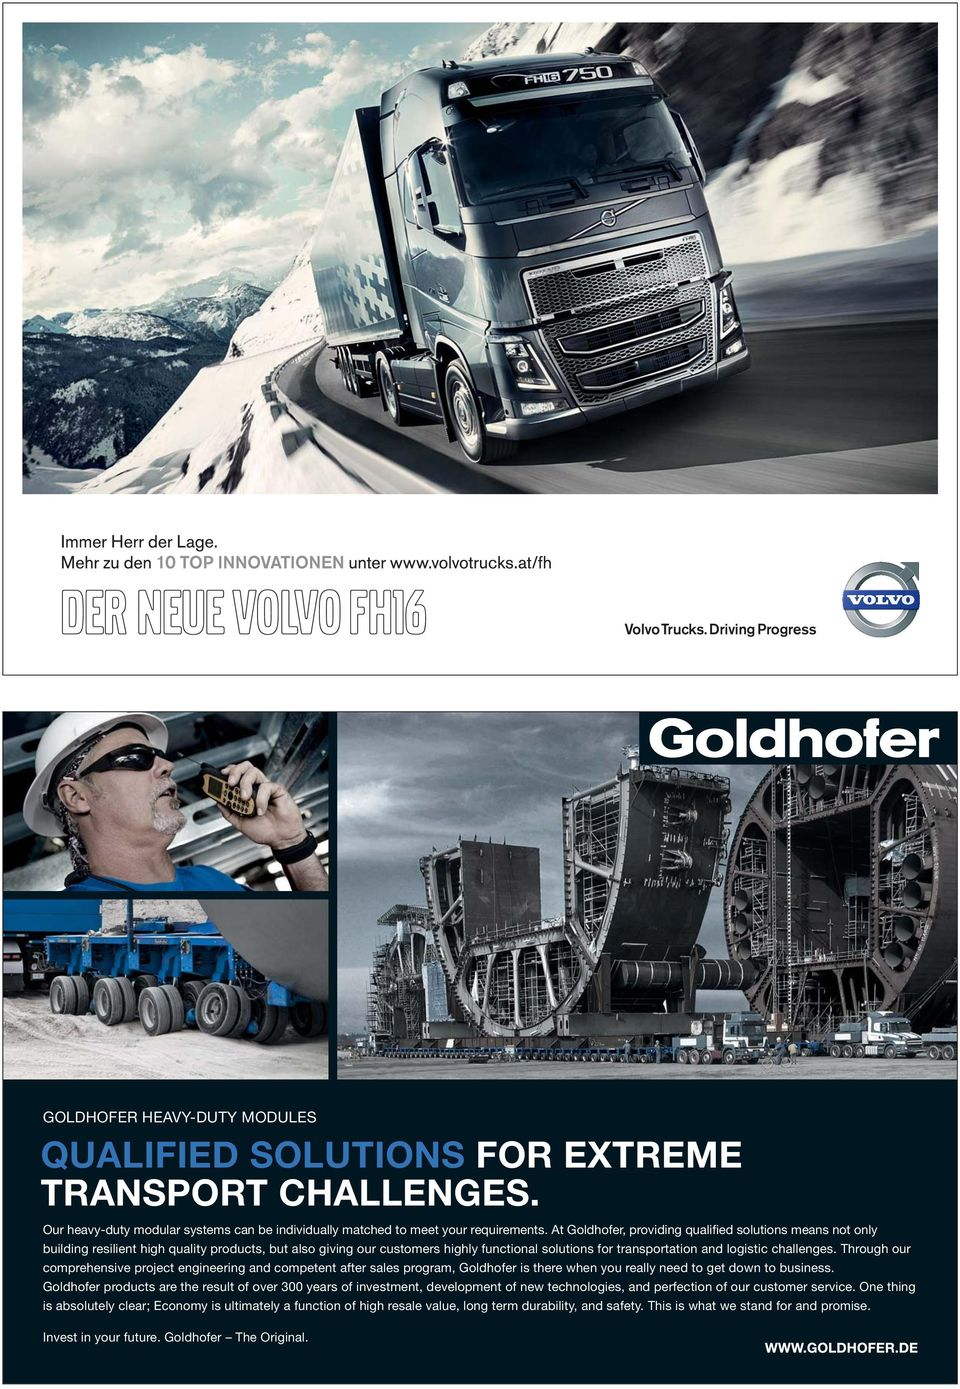 Through our comprehensive project engineering and competent after sales program, Goldhofer is there when you really need to get down to business.